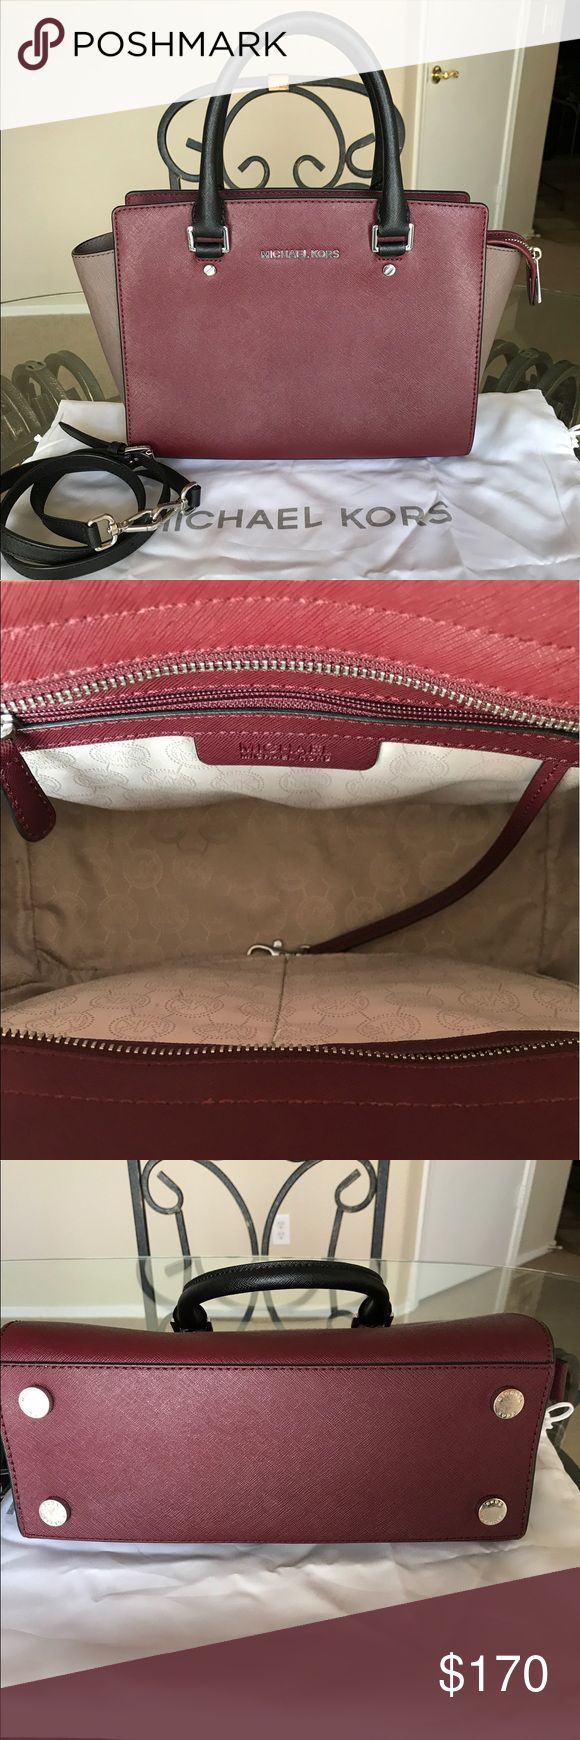 Sale! Mk medium Selma Medium color block Color: merlot, cinder, black  Saffiano leather with silver hardware  Some wear on the hardware  Includes detachable crossbody strap  Authentic  No trades! Michael Kors Bags Satchels